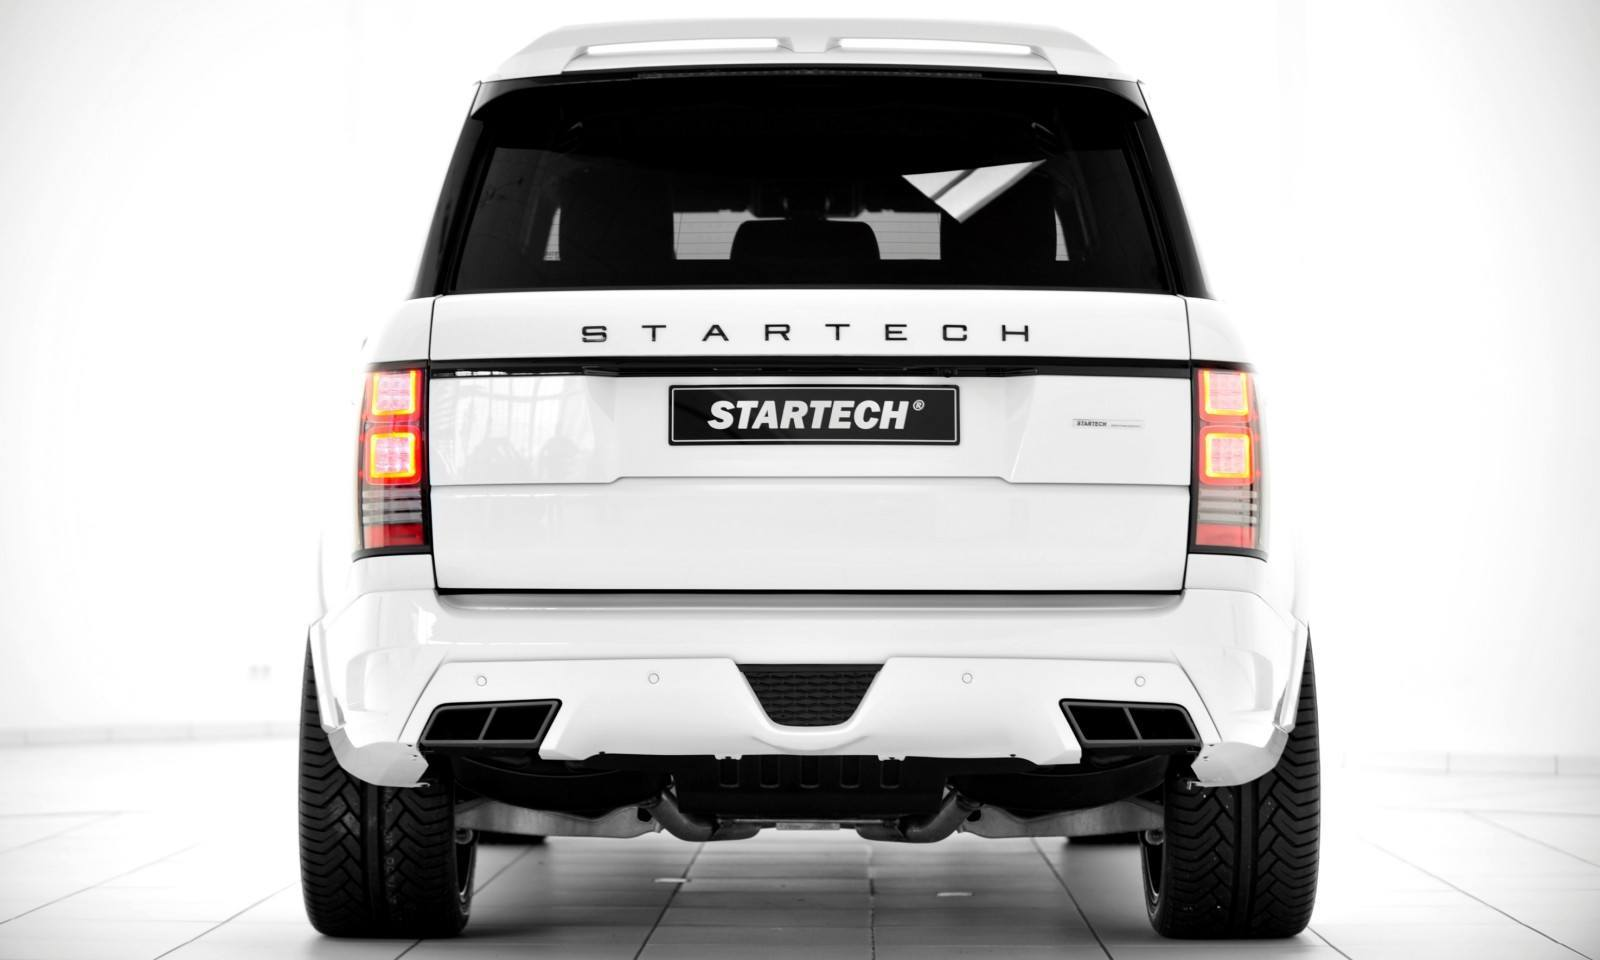 2013-2015 Range Rover By StarTech Brings Best of BRABUS Tech to Lux SUV King 20